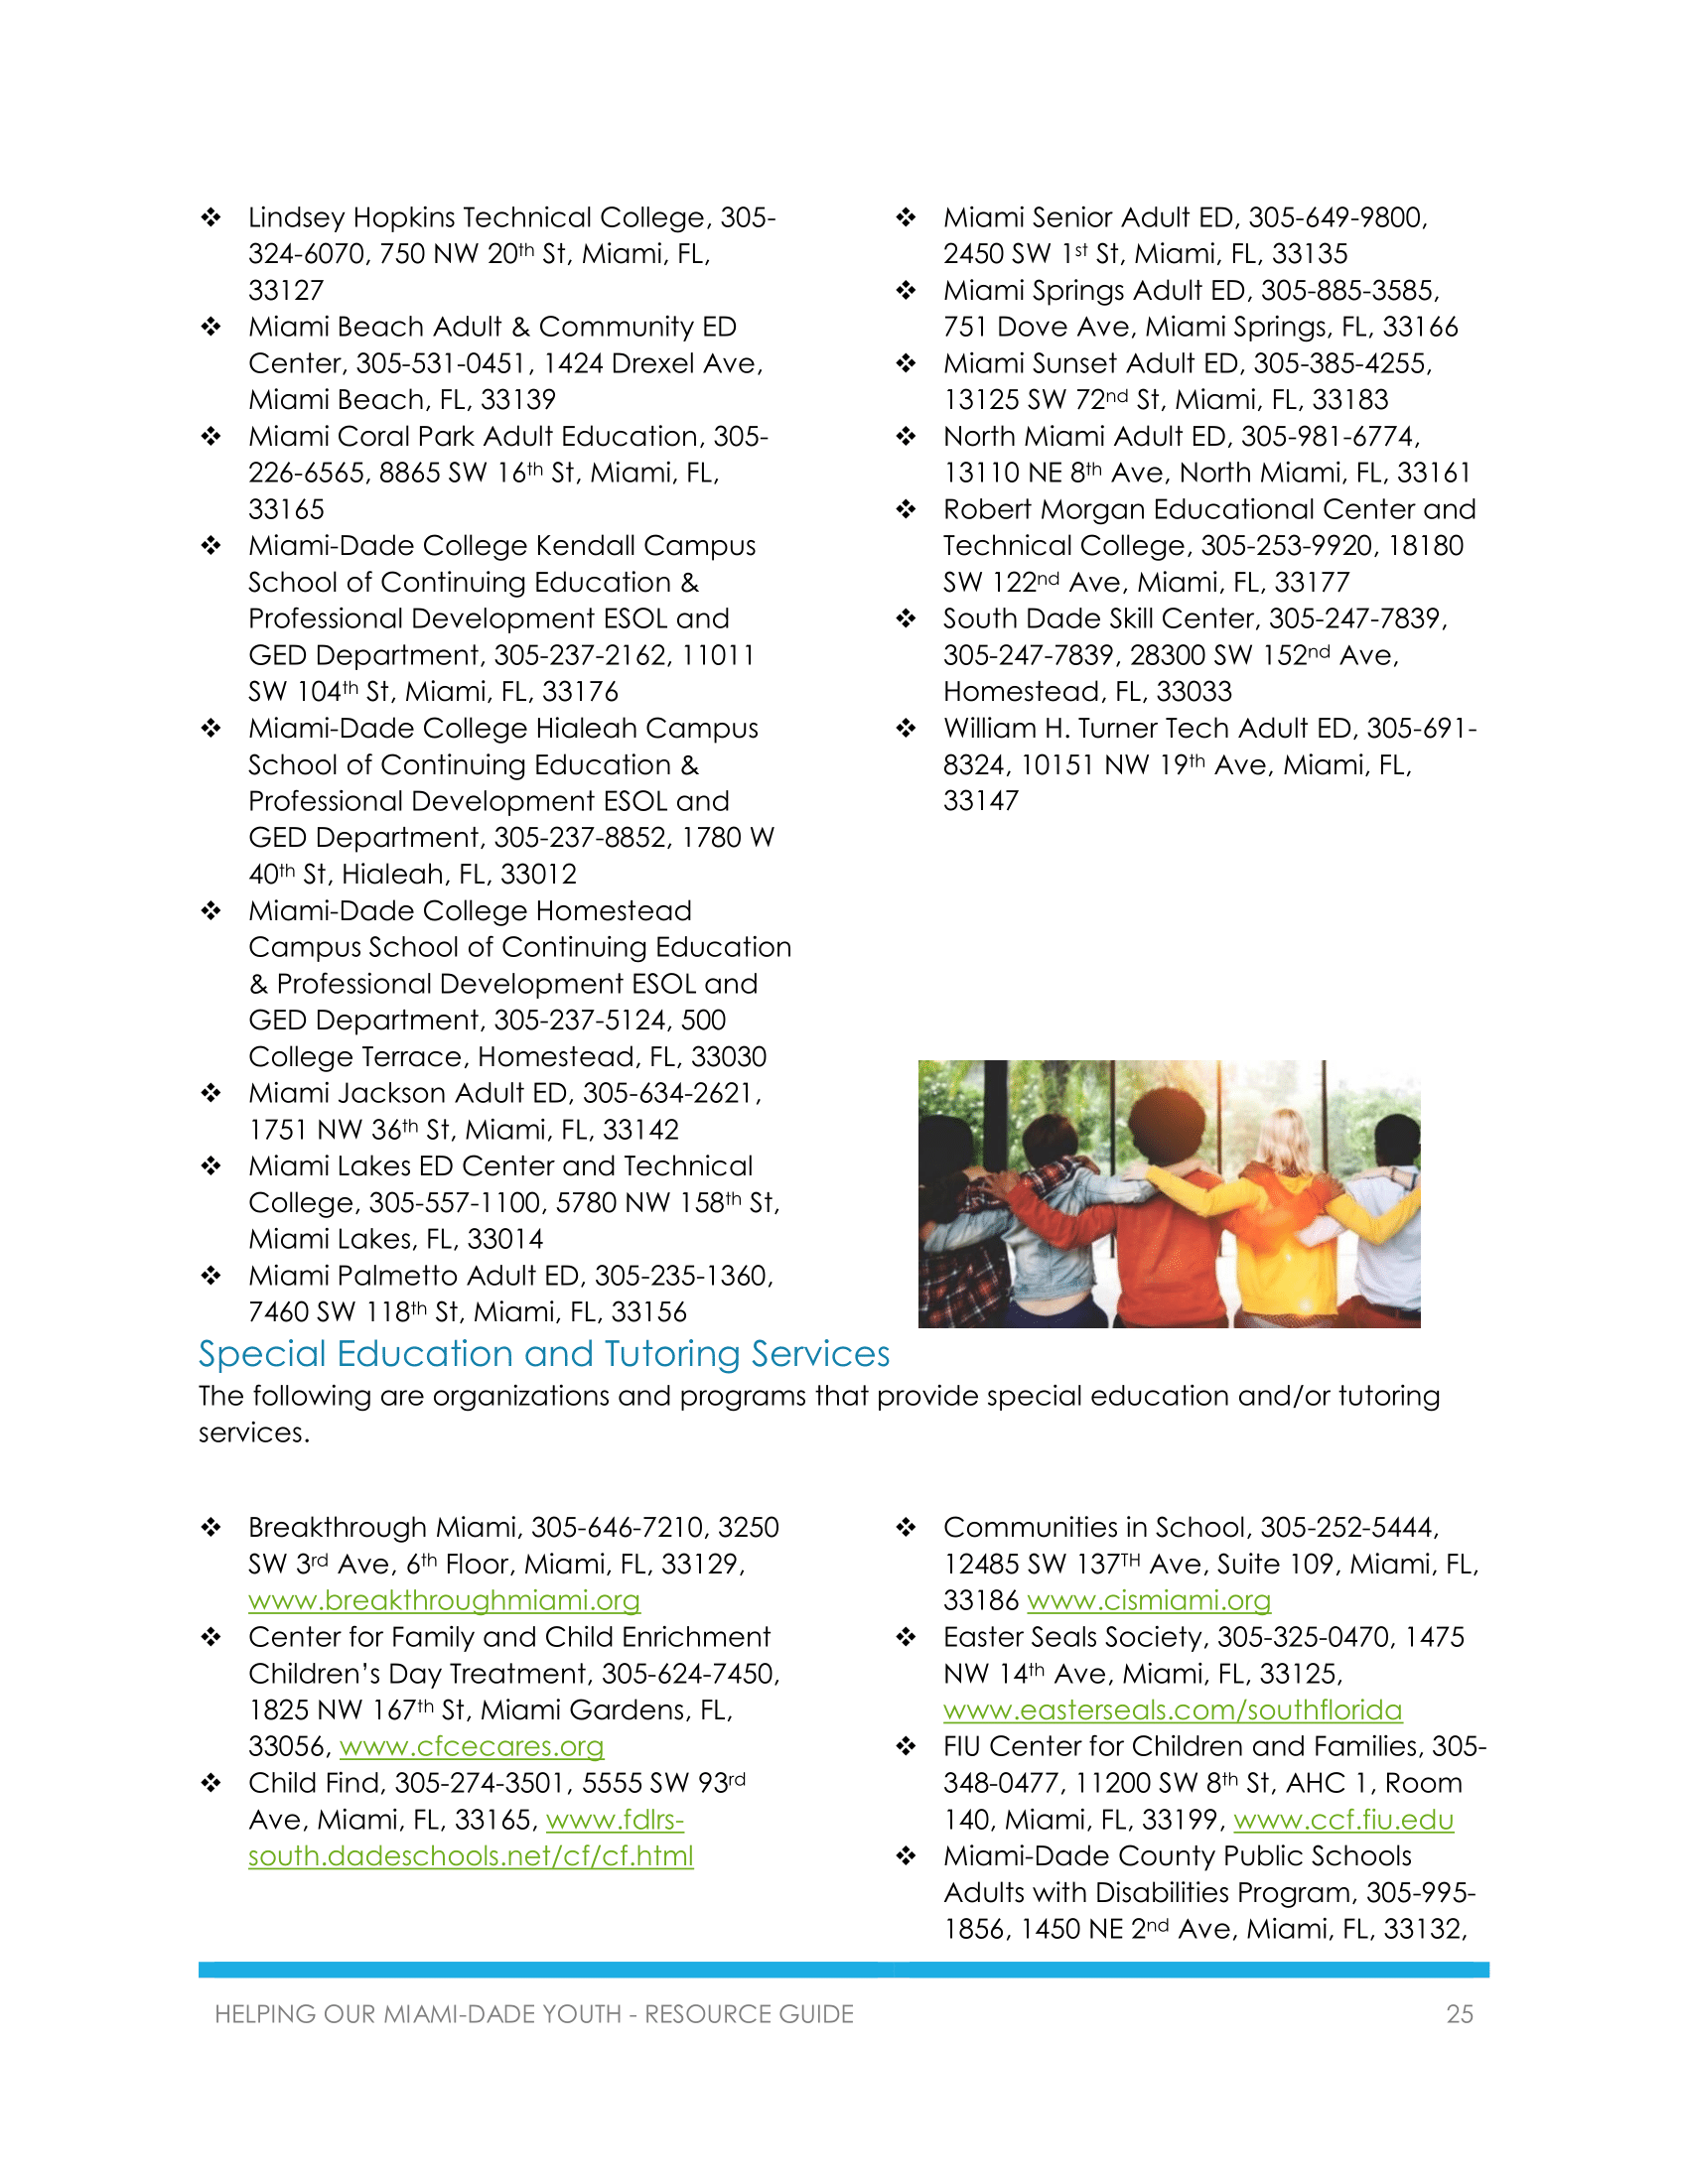 Youth Resource Guide - May 2018-30.png